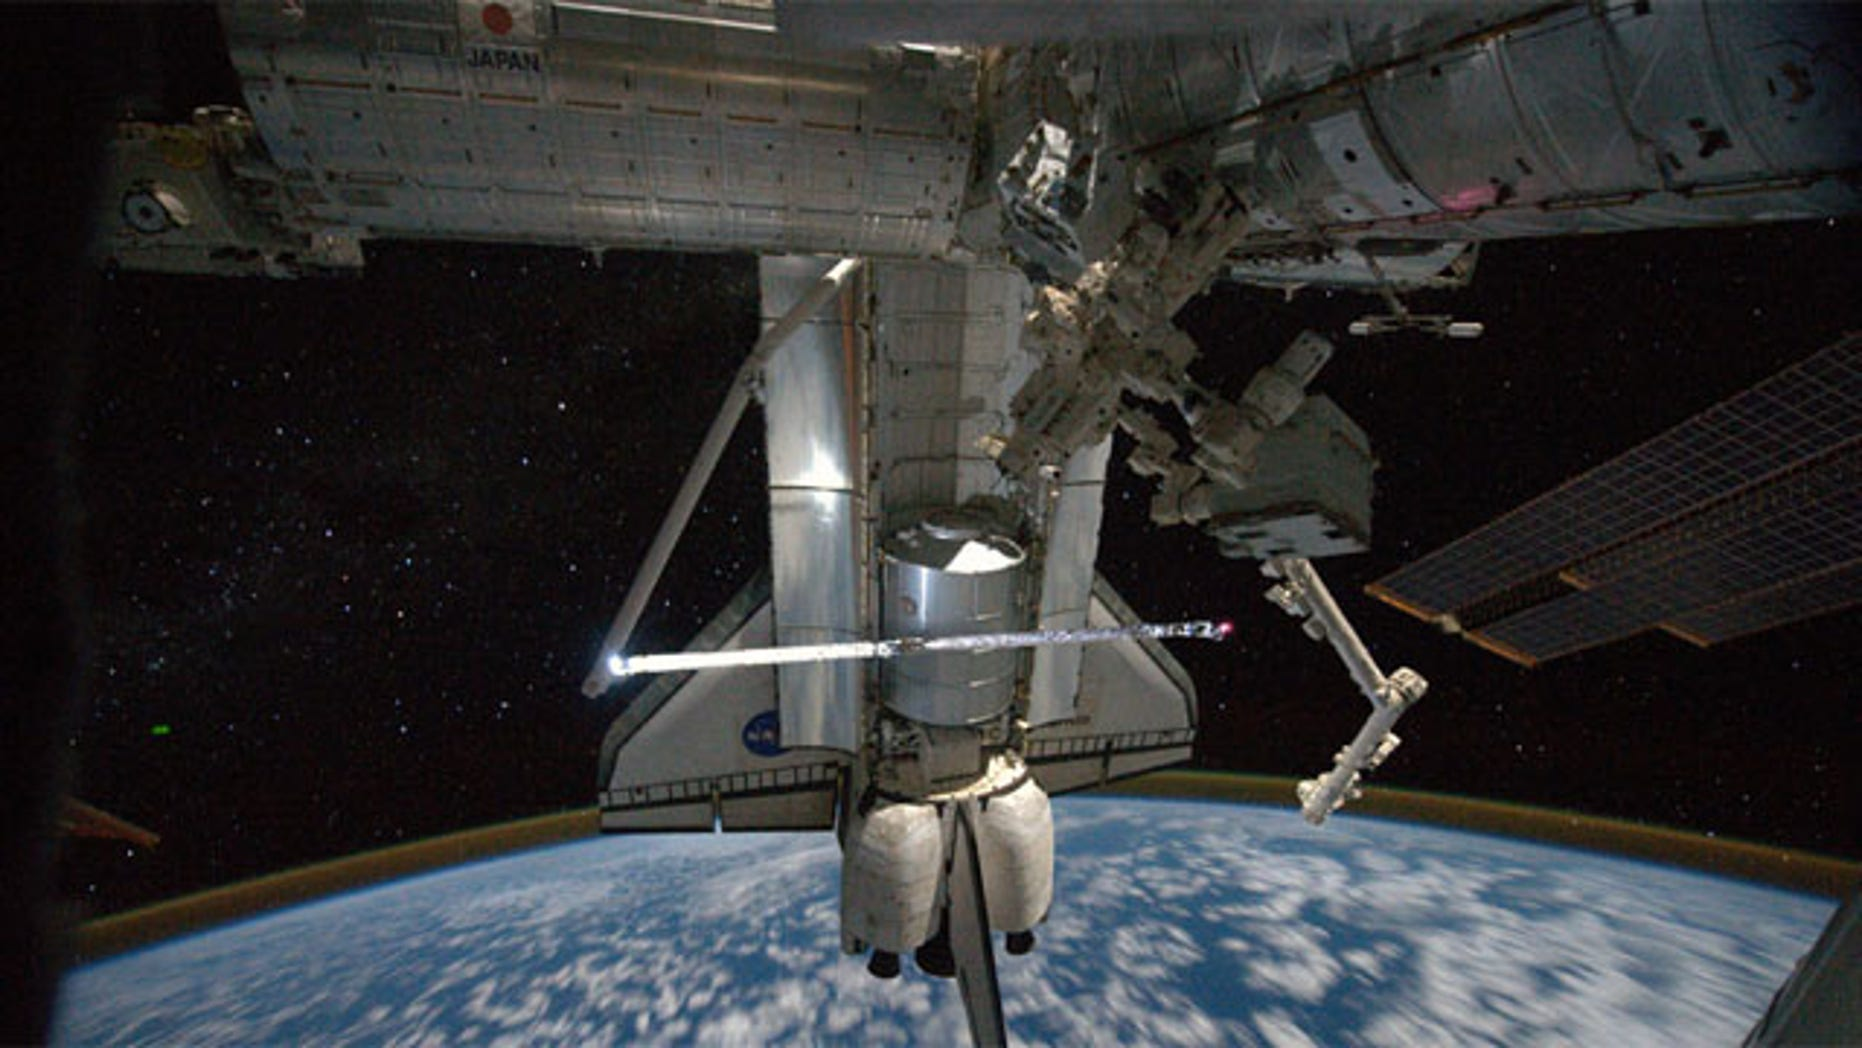 This view of the space shuttle Atlantis while still docked with the International Space Station was taken by a crew member aboard the station on the final day of joint activities between the crew members for the STS-135 and Expedition 28 missions.